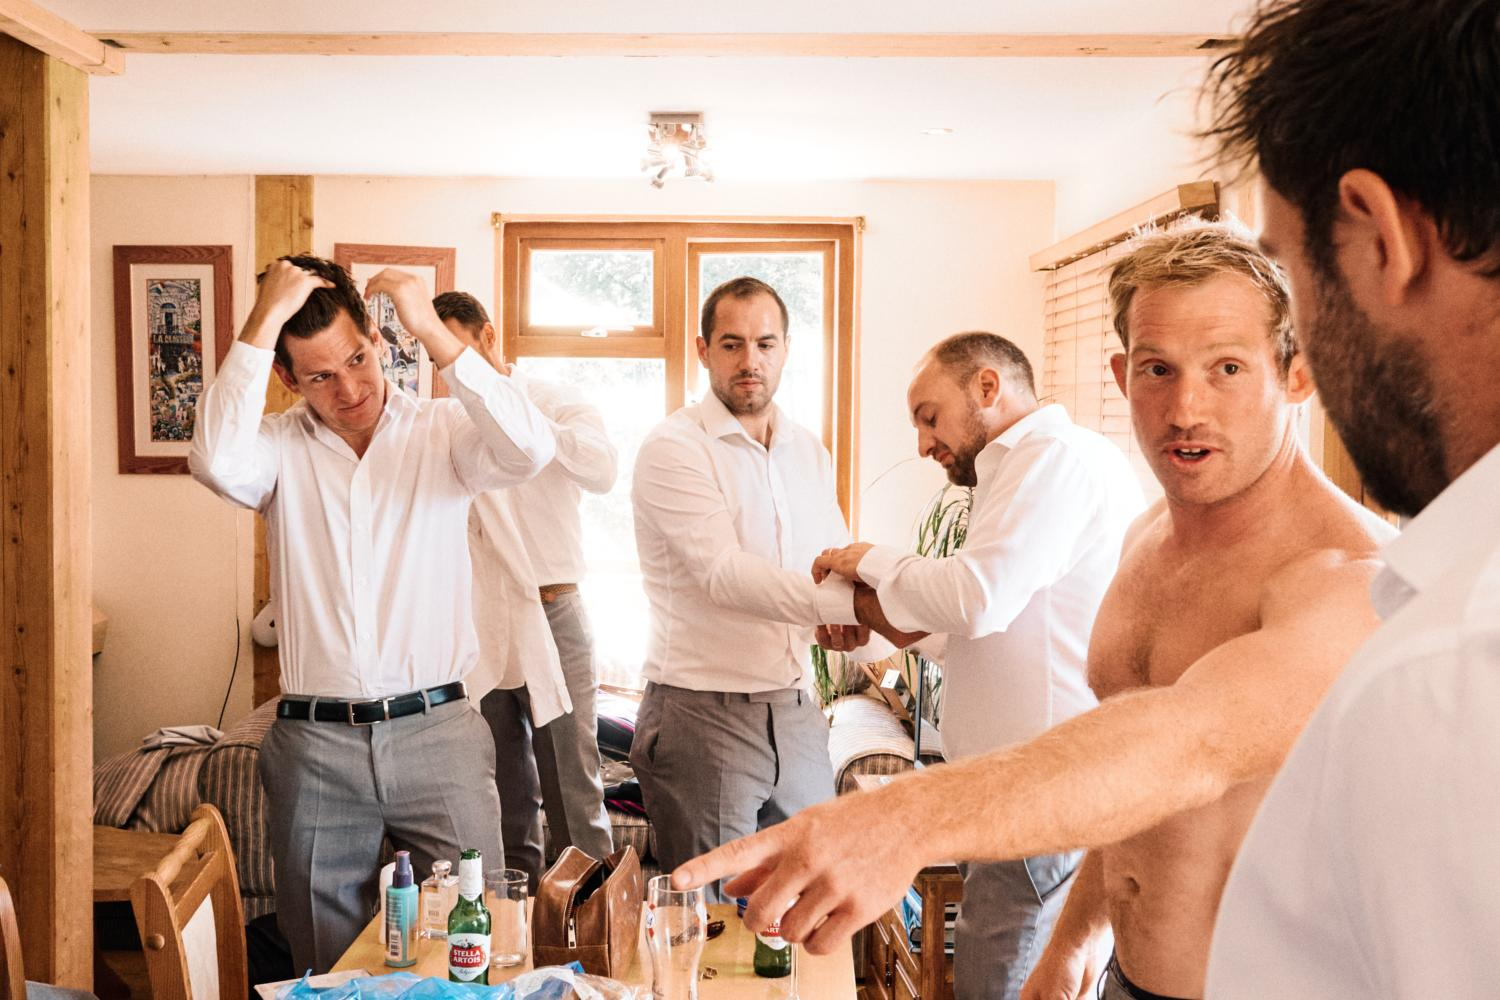 Groom and friends get dressed for wedding